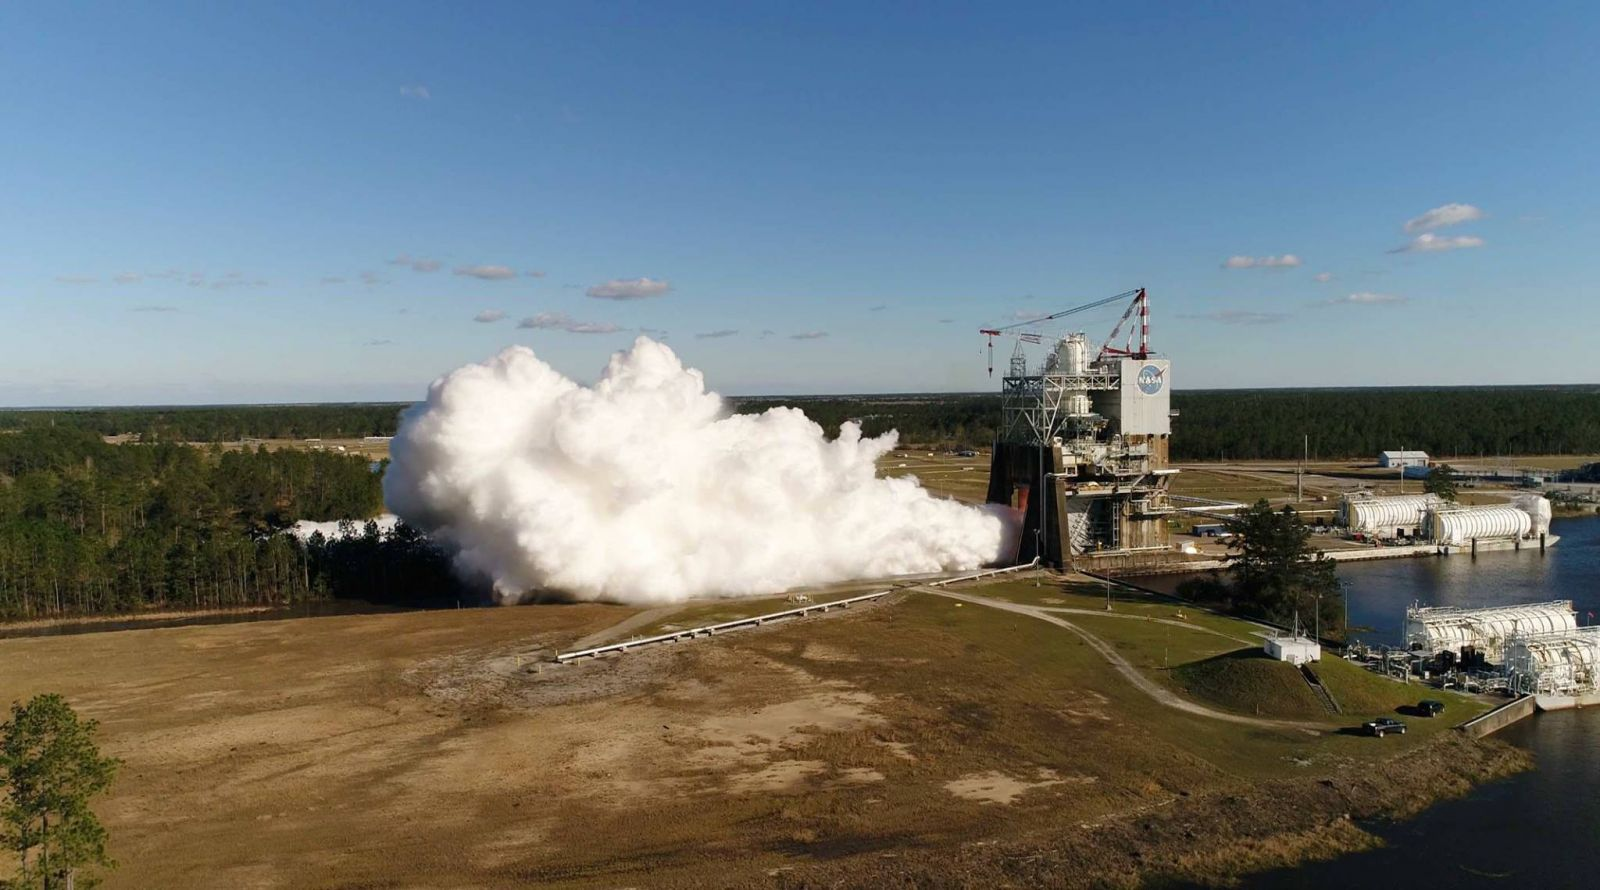 A-1 test stand RS-25 firing from a drone